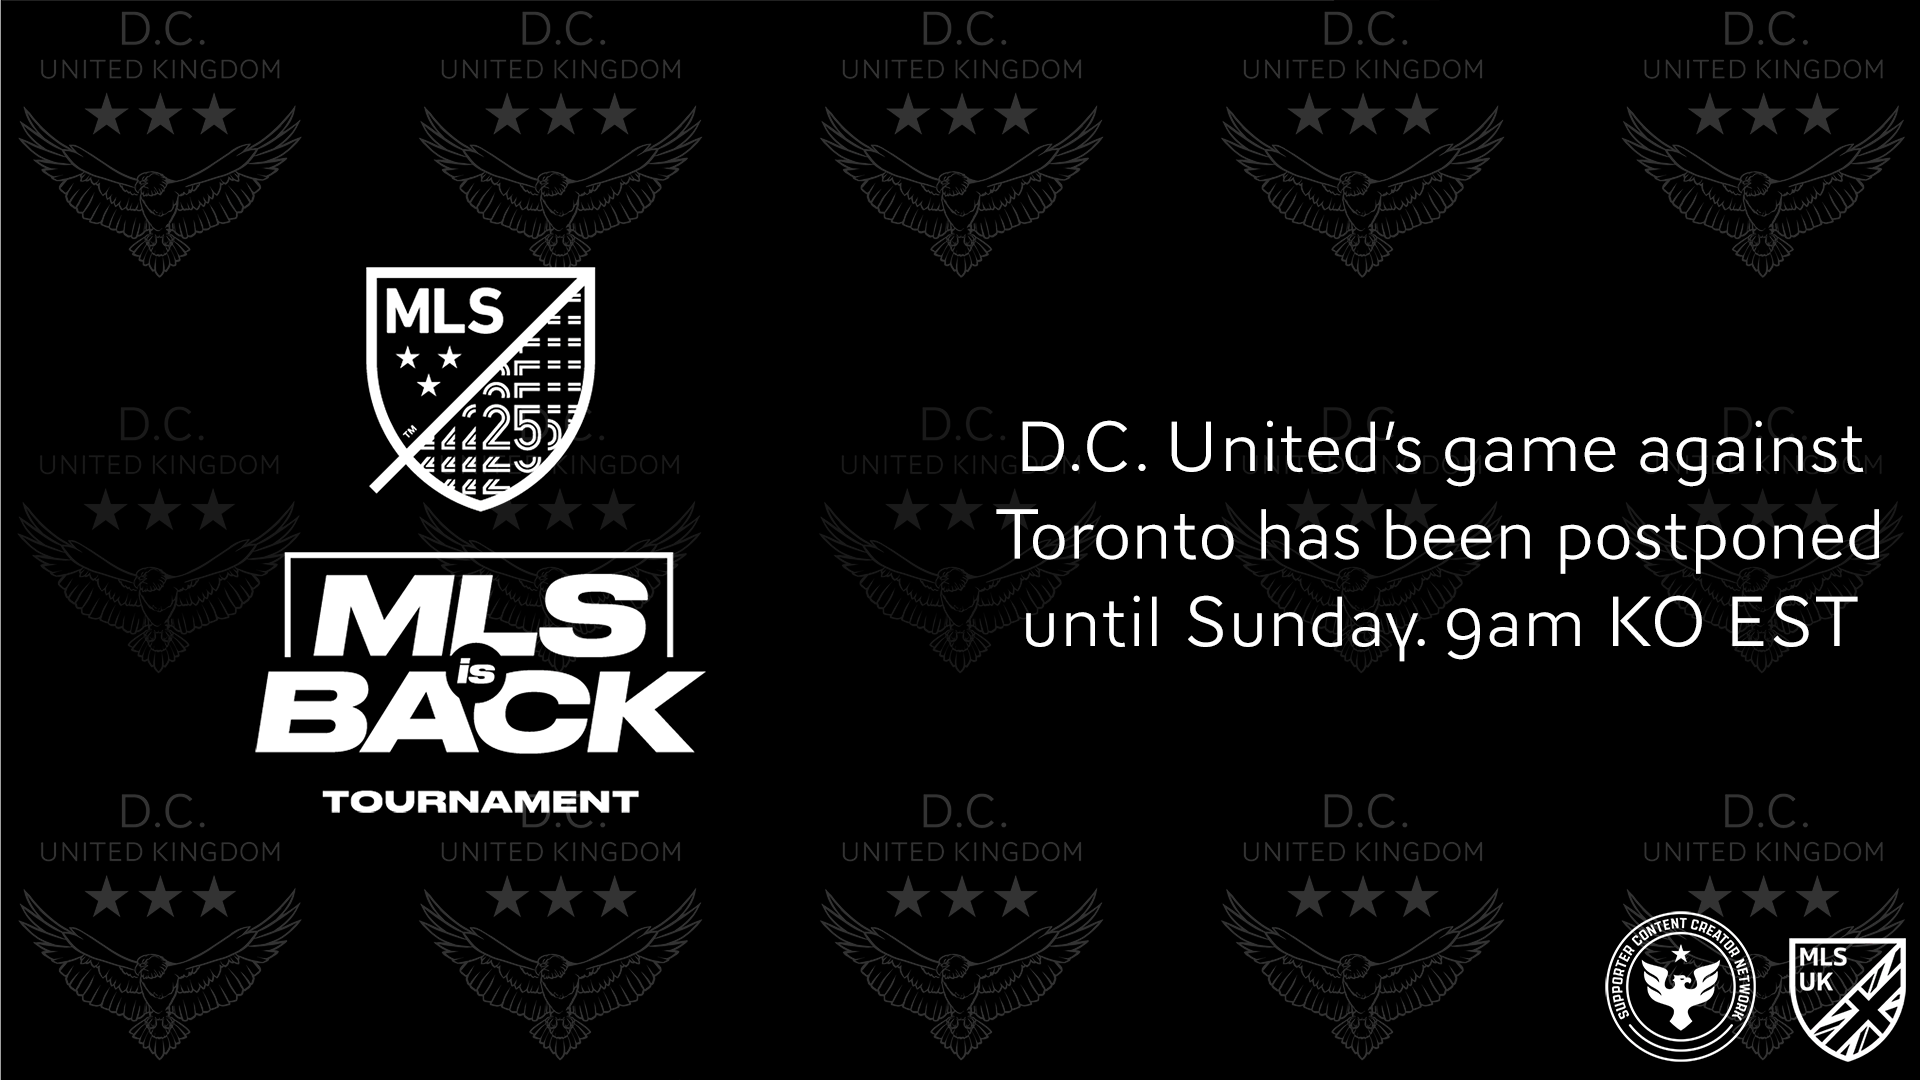 DCU vs Toronto postponed